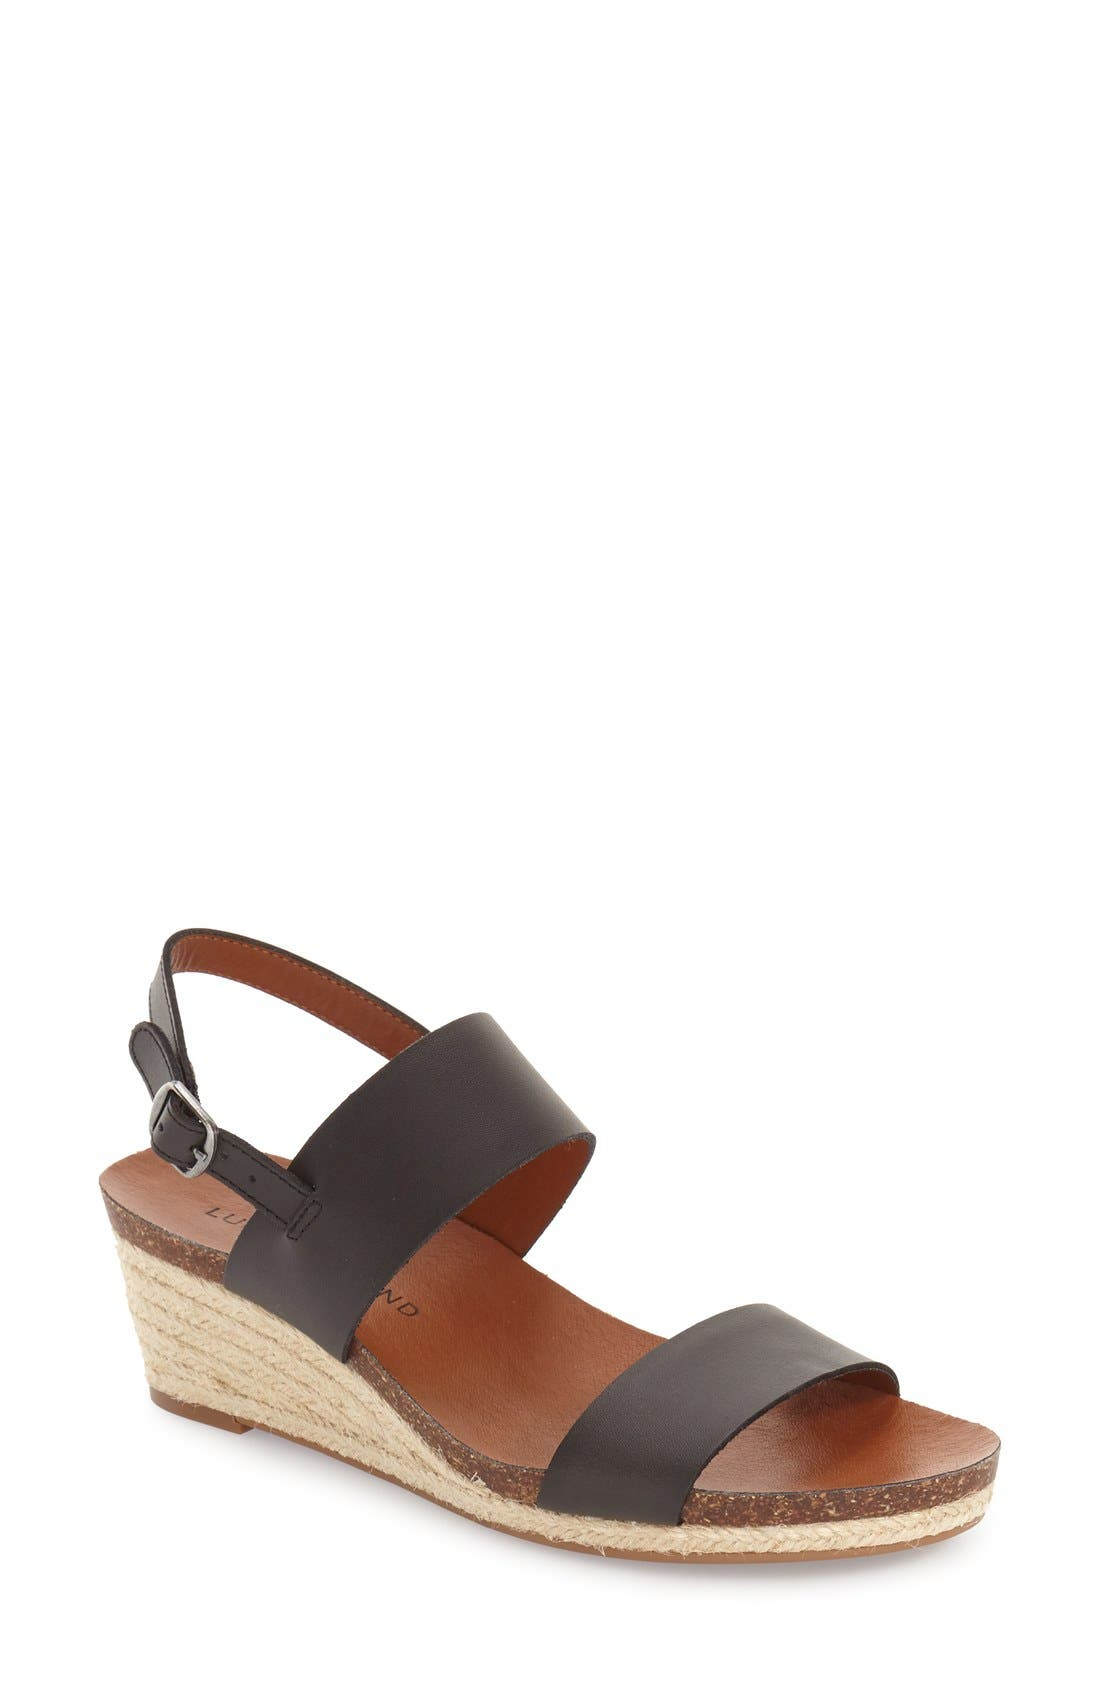 Main Image - Lucky Brand 'Jette' Wedge Sandal (Women)